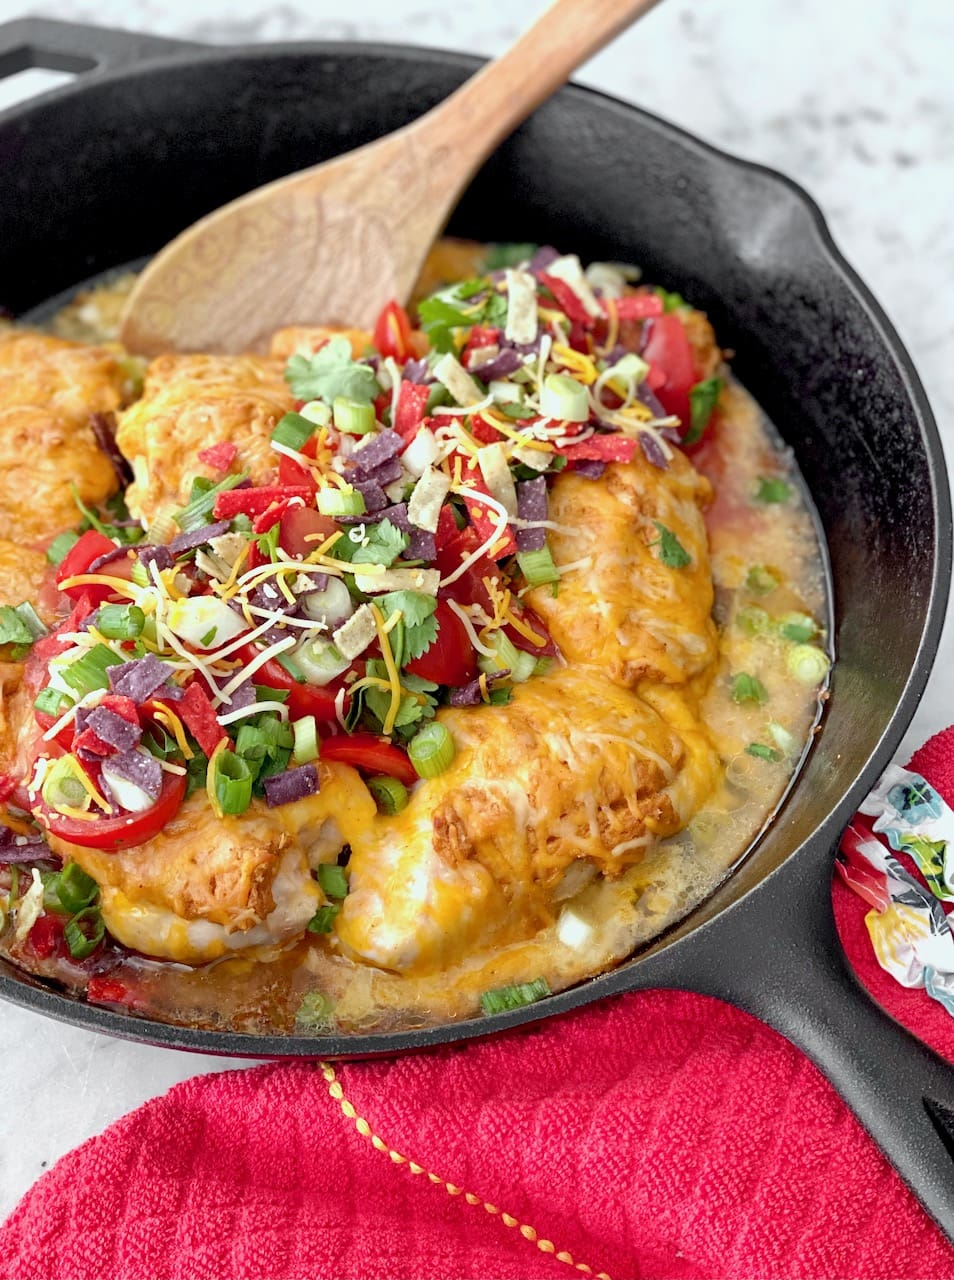 chicken breasts covered with cheese and taco toppings in a cast iron skillet.